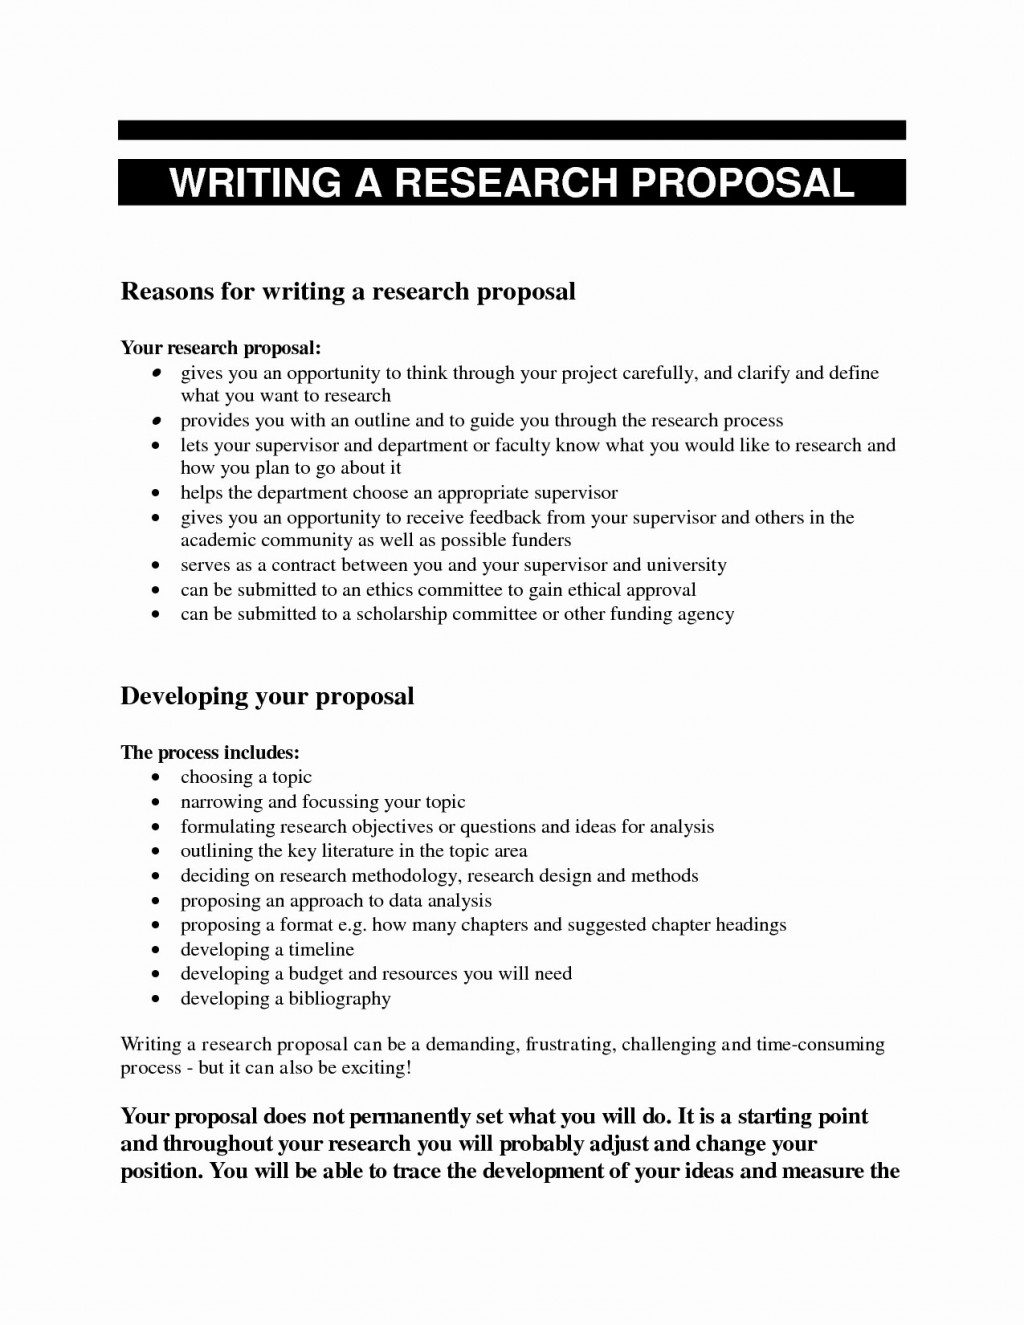 016 Research Proposal Example Mla Inspirational Essay Save Topics Juve Of Format Fearsome Paper In Education Topic Write 5 A Large